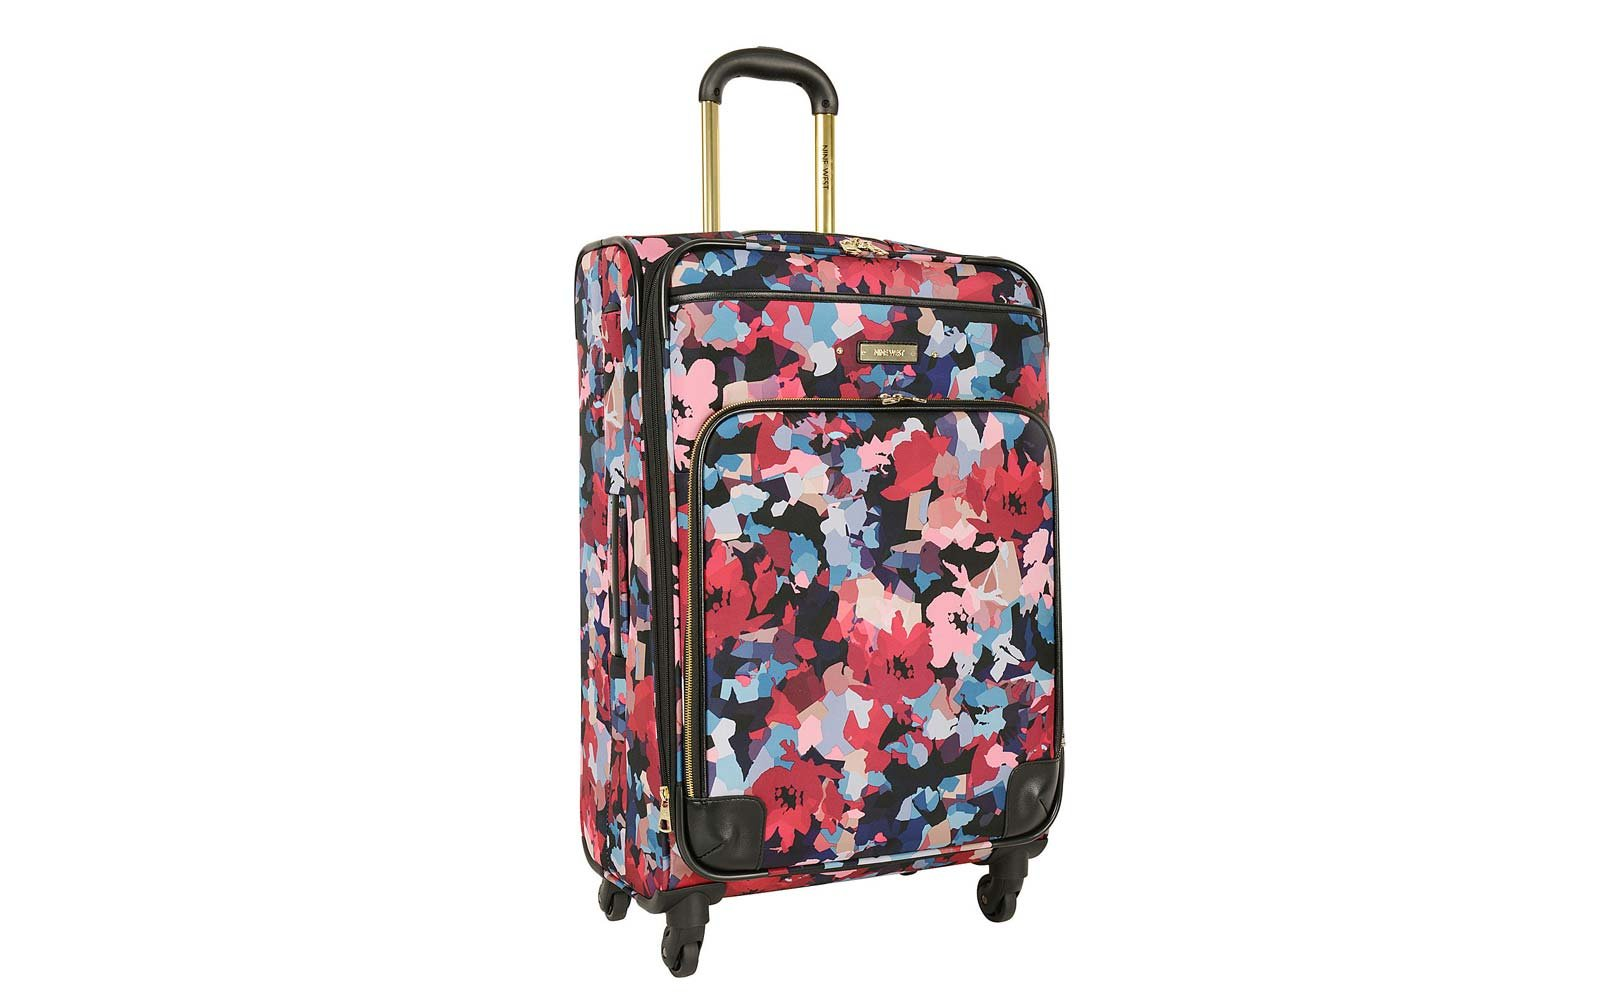 Nine West Arieana Luggage